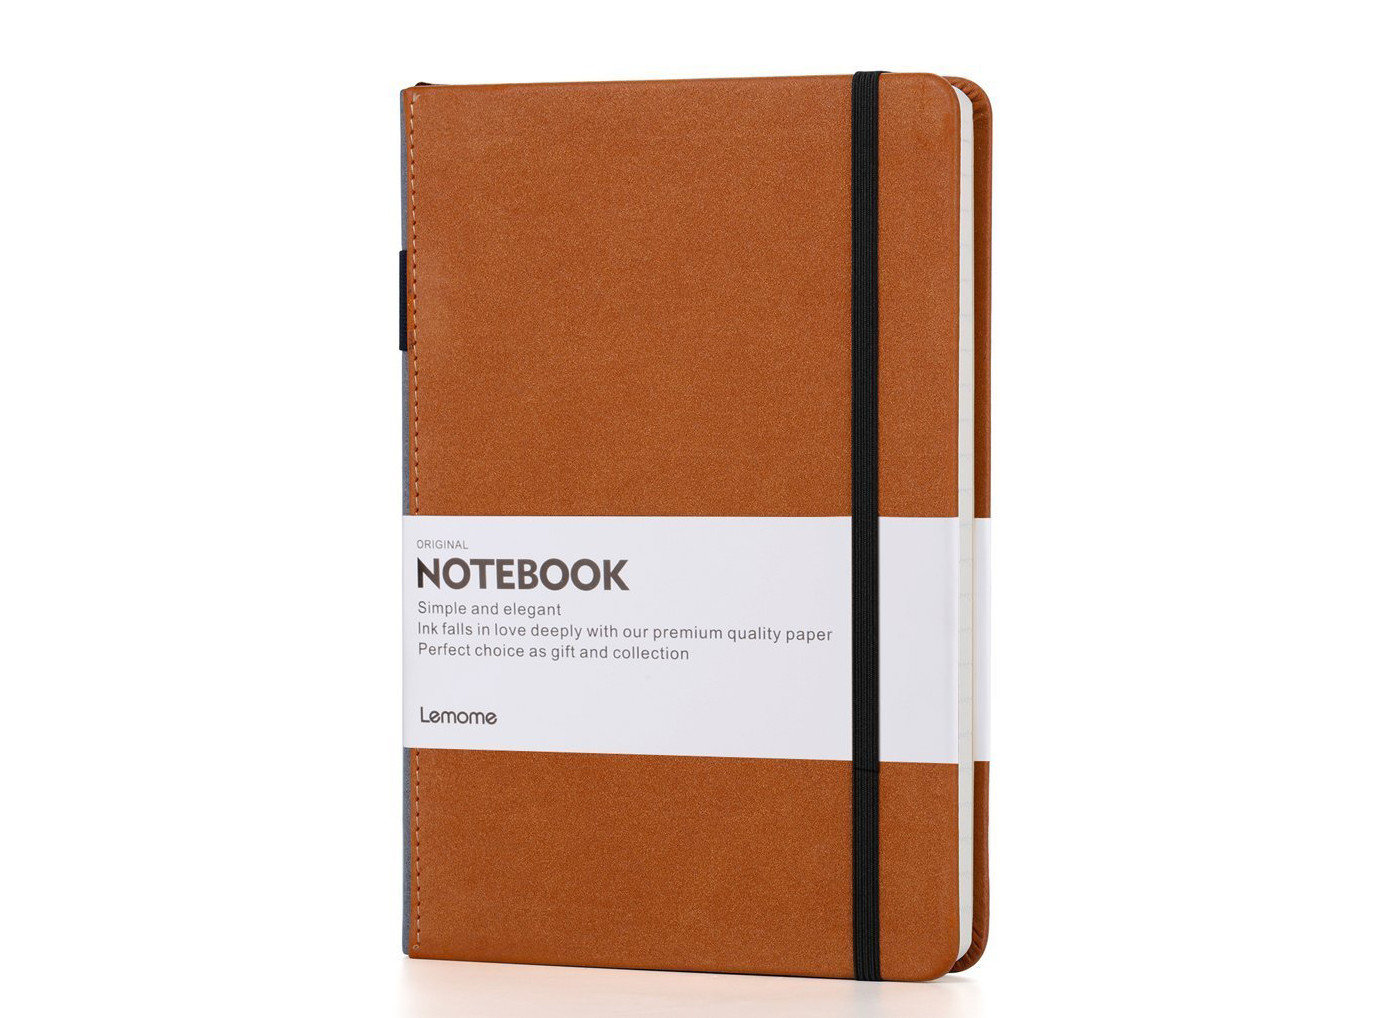 Style + Design product product design notebook accessory case